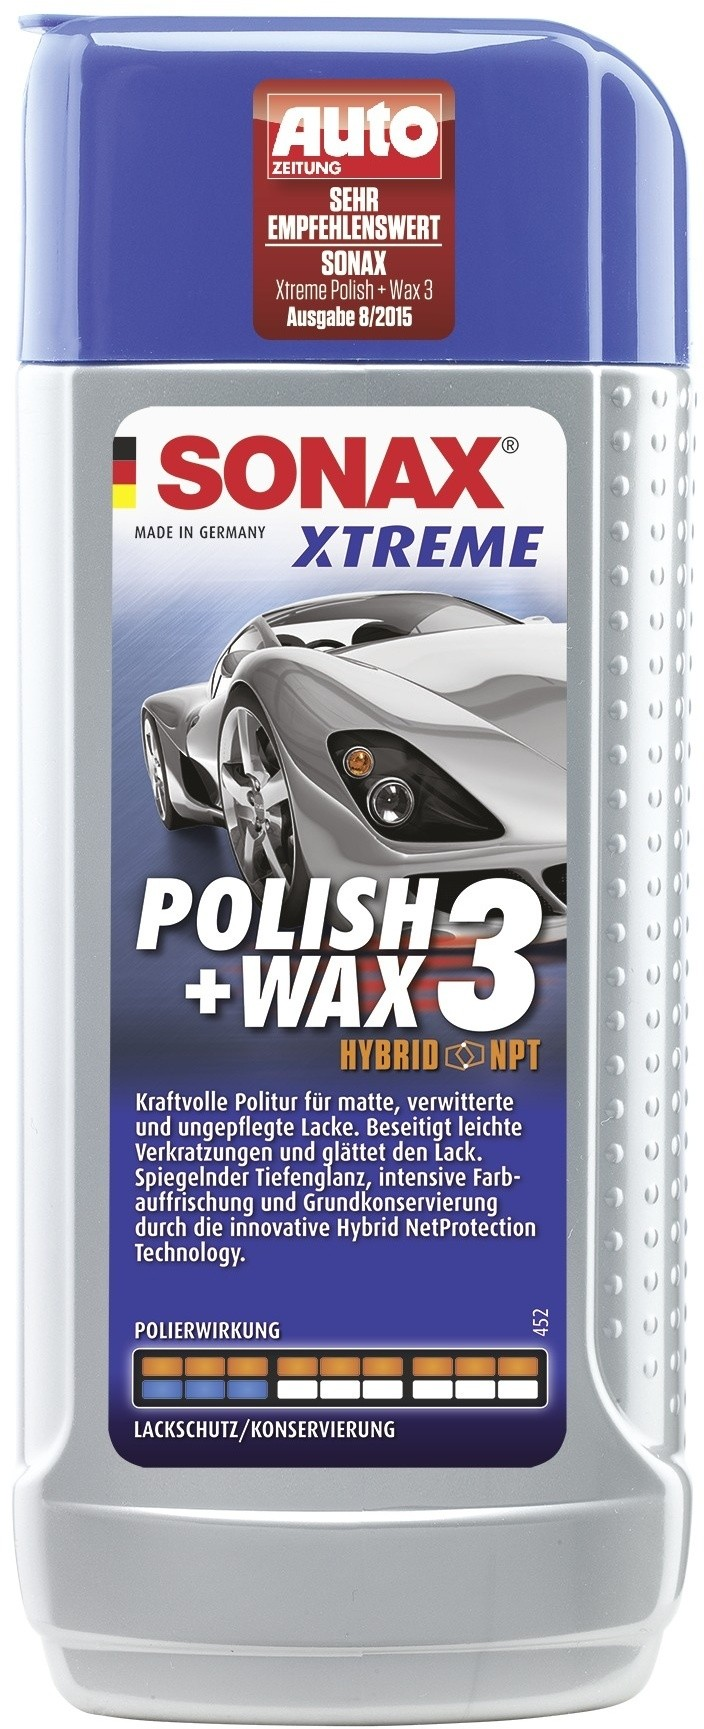 sonax xtreme polish wax 3 hybrid npt 250 ml flasche. Black Bedroom Furniture Sets. Home Design Ideas